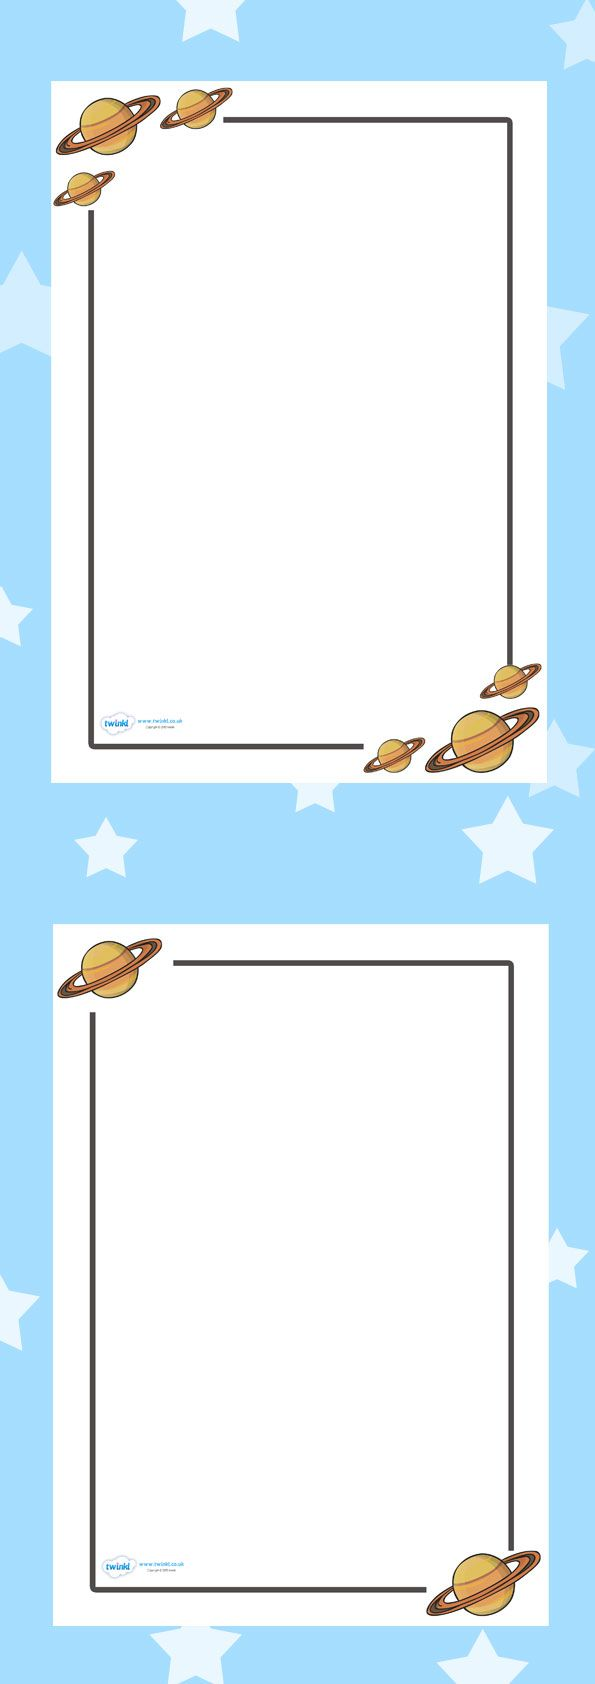 Preschool border page border - Twinkl Resources Space Page Borders Classroom Printables For Pre School Kindergarten Elementary School And Beyond